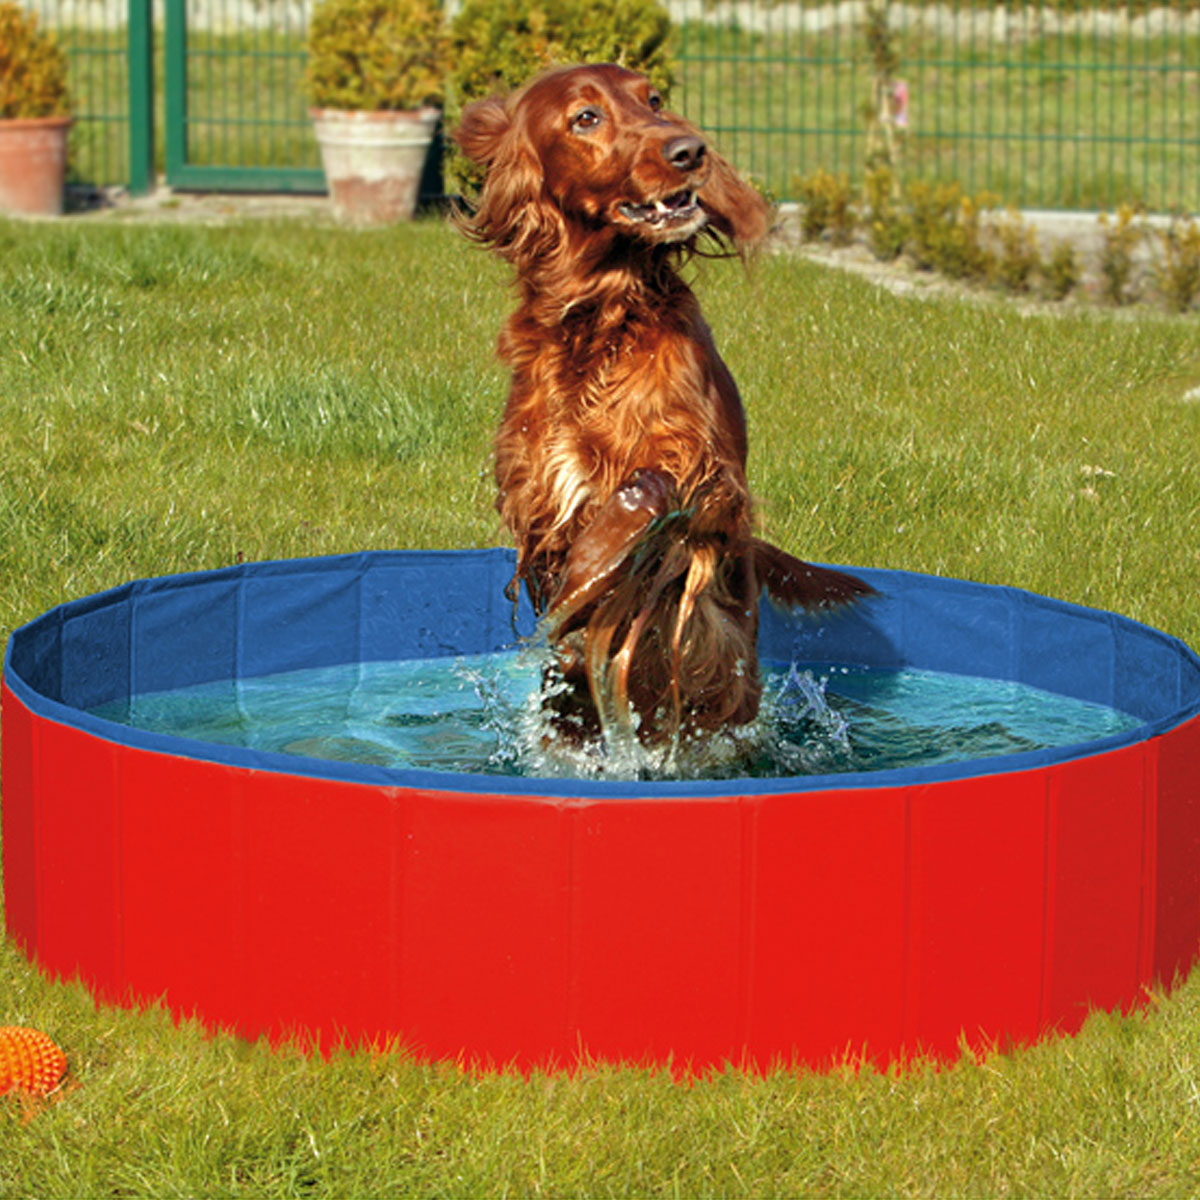 doggy pool hundeschwimmbecken g nstig kaufen bei zooroyal. Black Bedroom Furniture Sets. Home Design Ideas